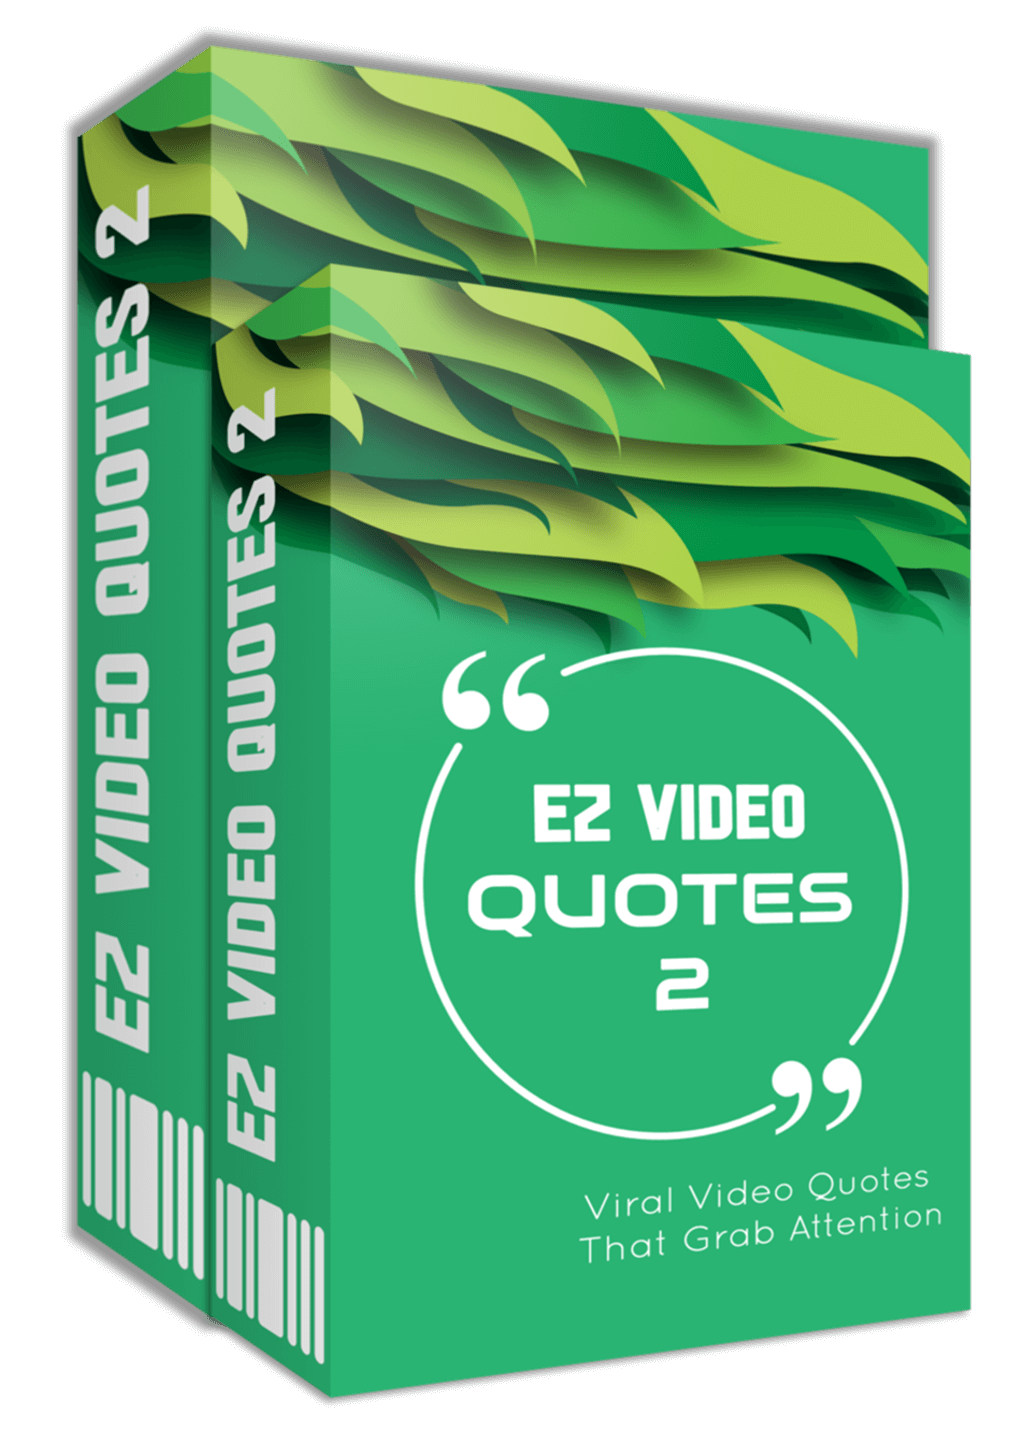 EZ-Video-Quotes-2-Logo